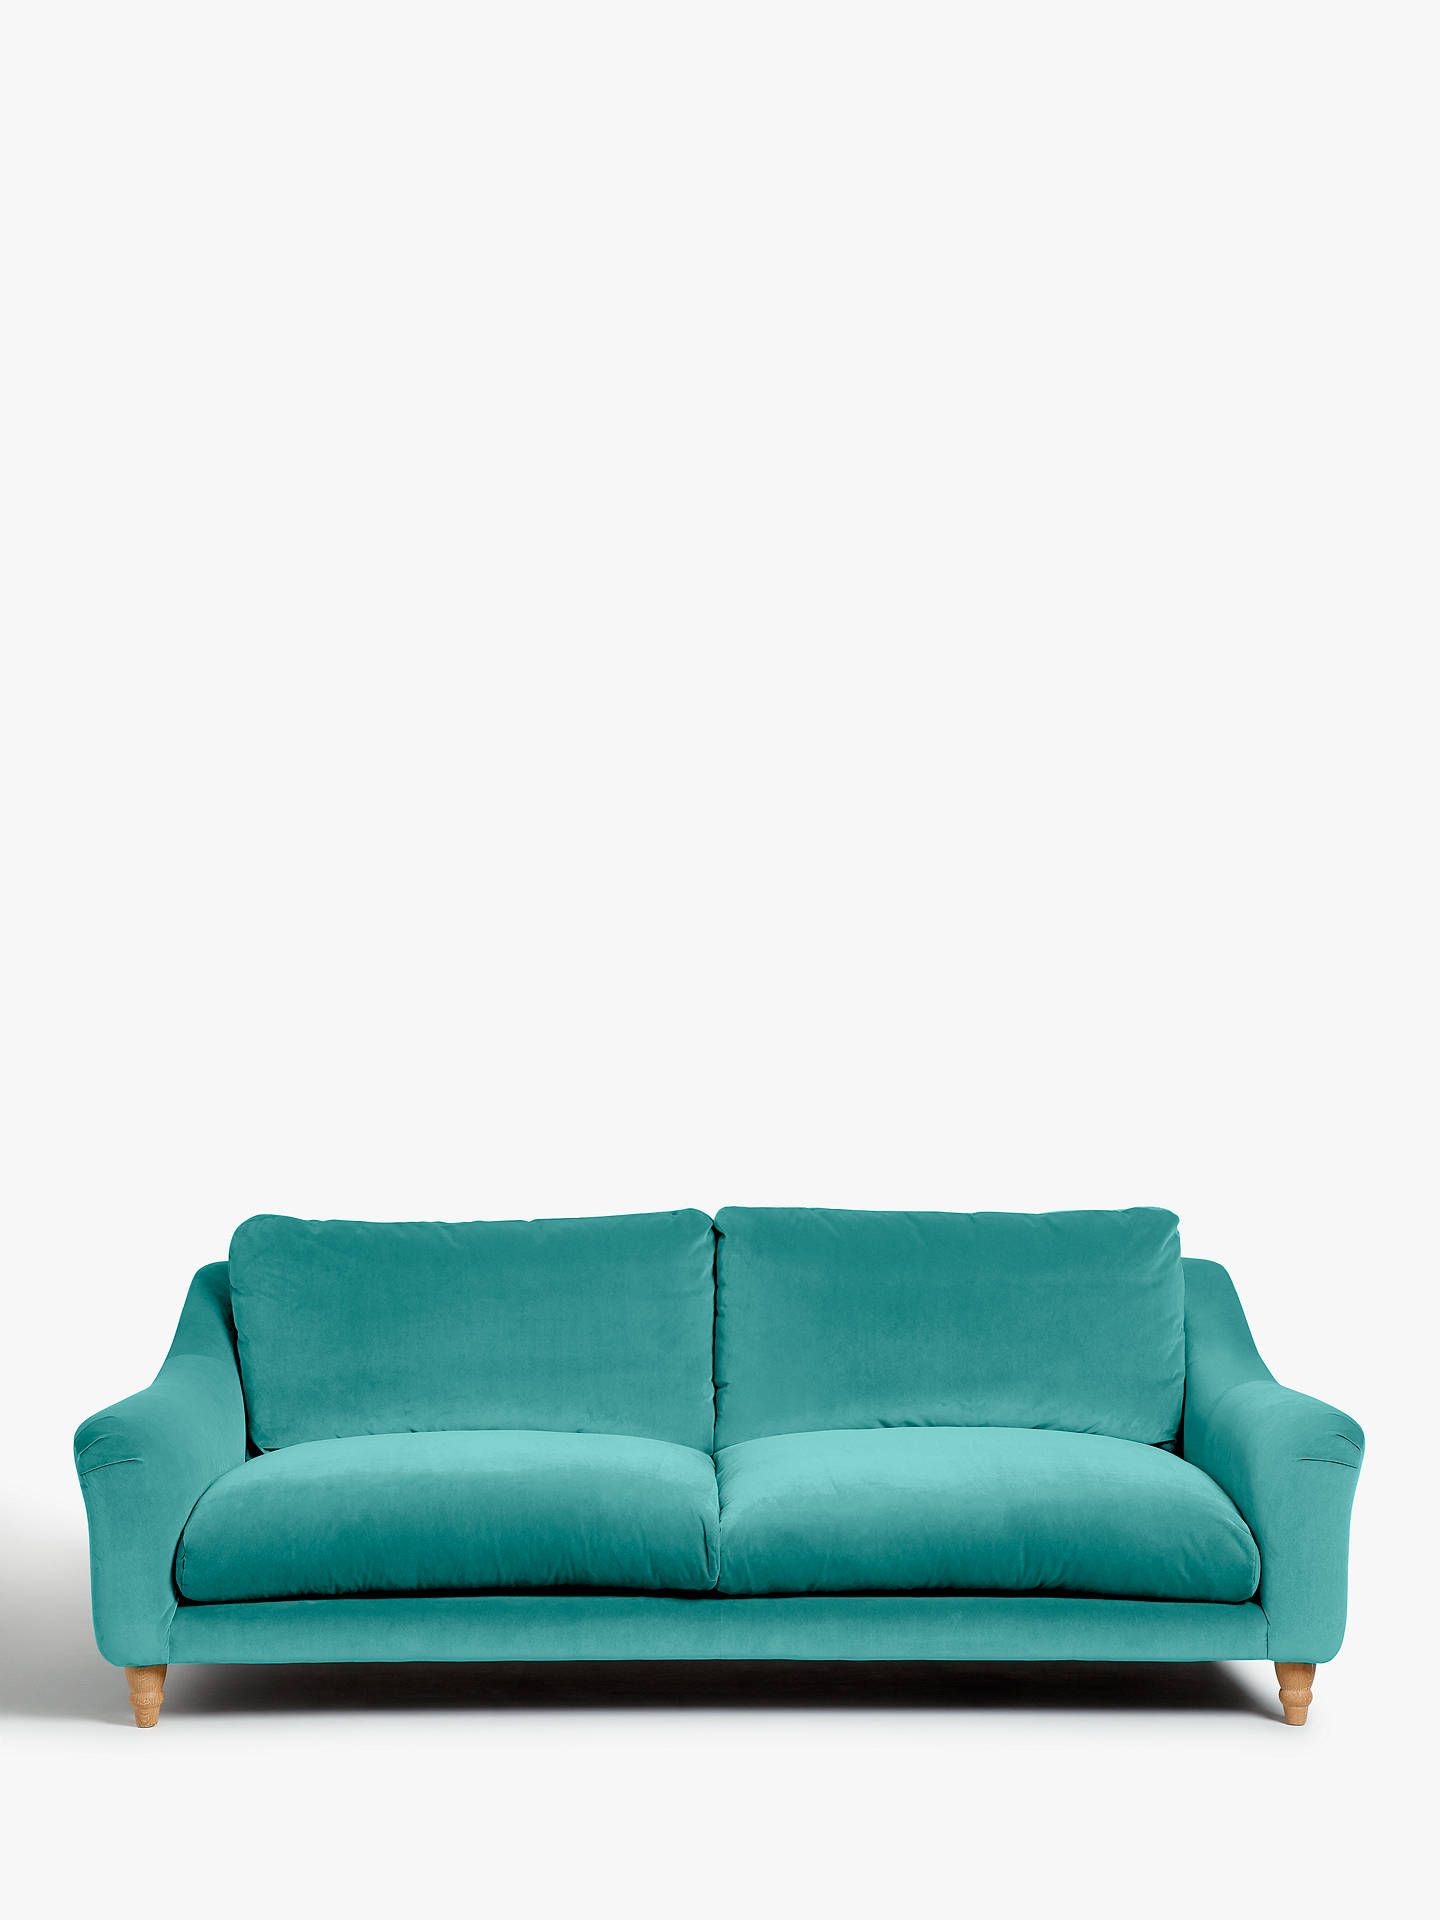 Buy Schmoozer Grand 4 Seater Sofa by Loaf at John Lewis, Brushed Cotton Peacock Online at johnlewis.com